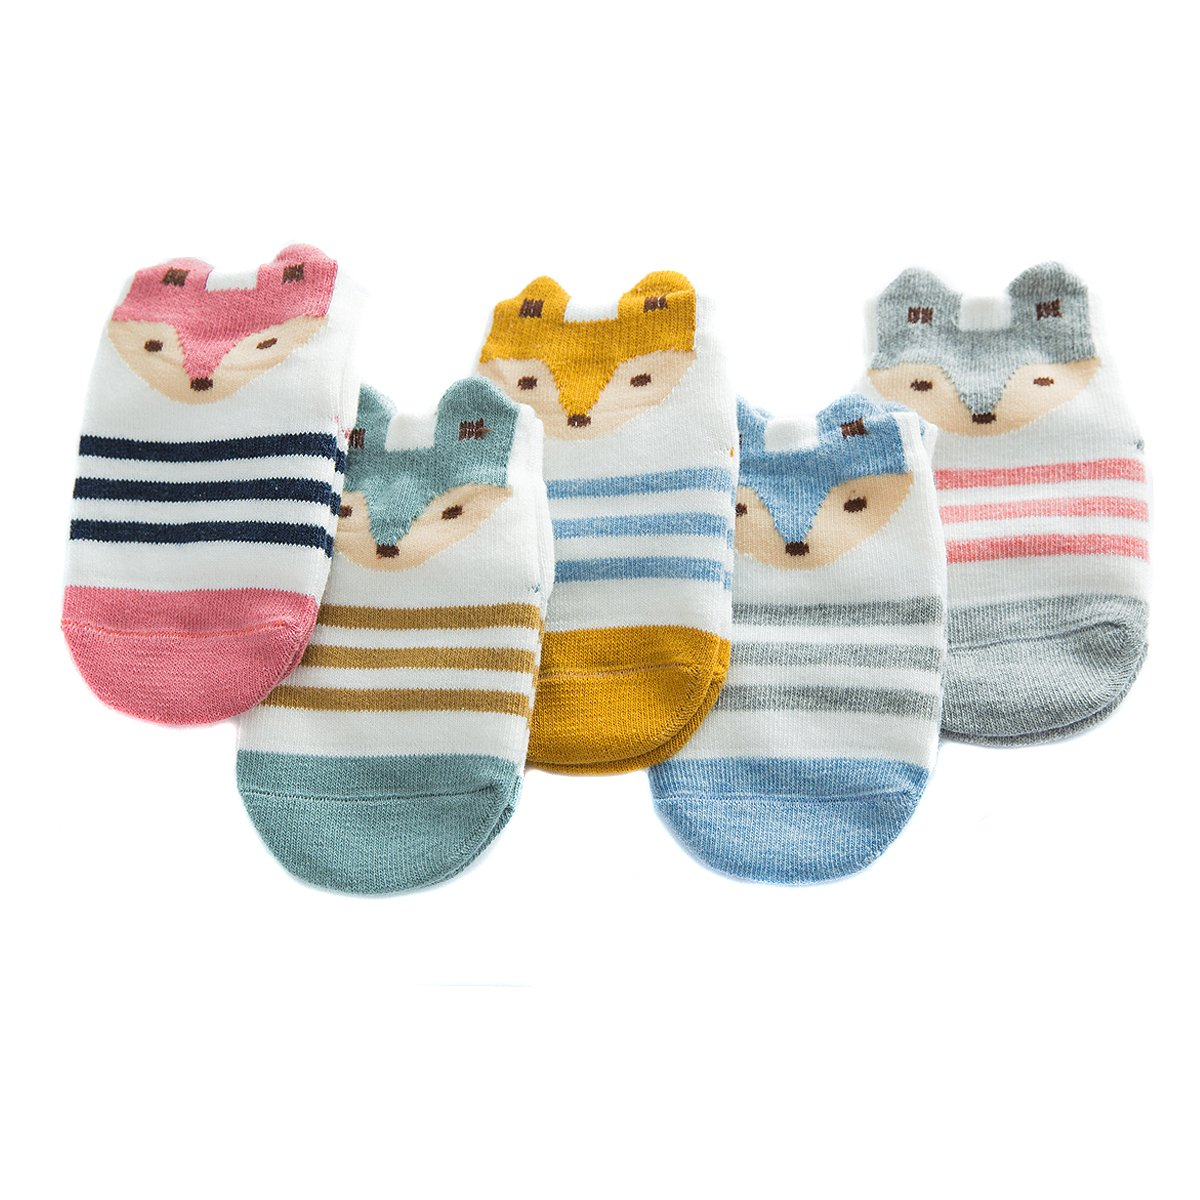 Fairy 5 Pairs Cartoon Cute Animals Fox Non Skid Cotton Baby Socks Stripes Socks (12 - 24 Months) by Fairy Socks (Image #1)